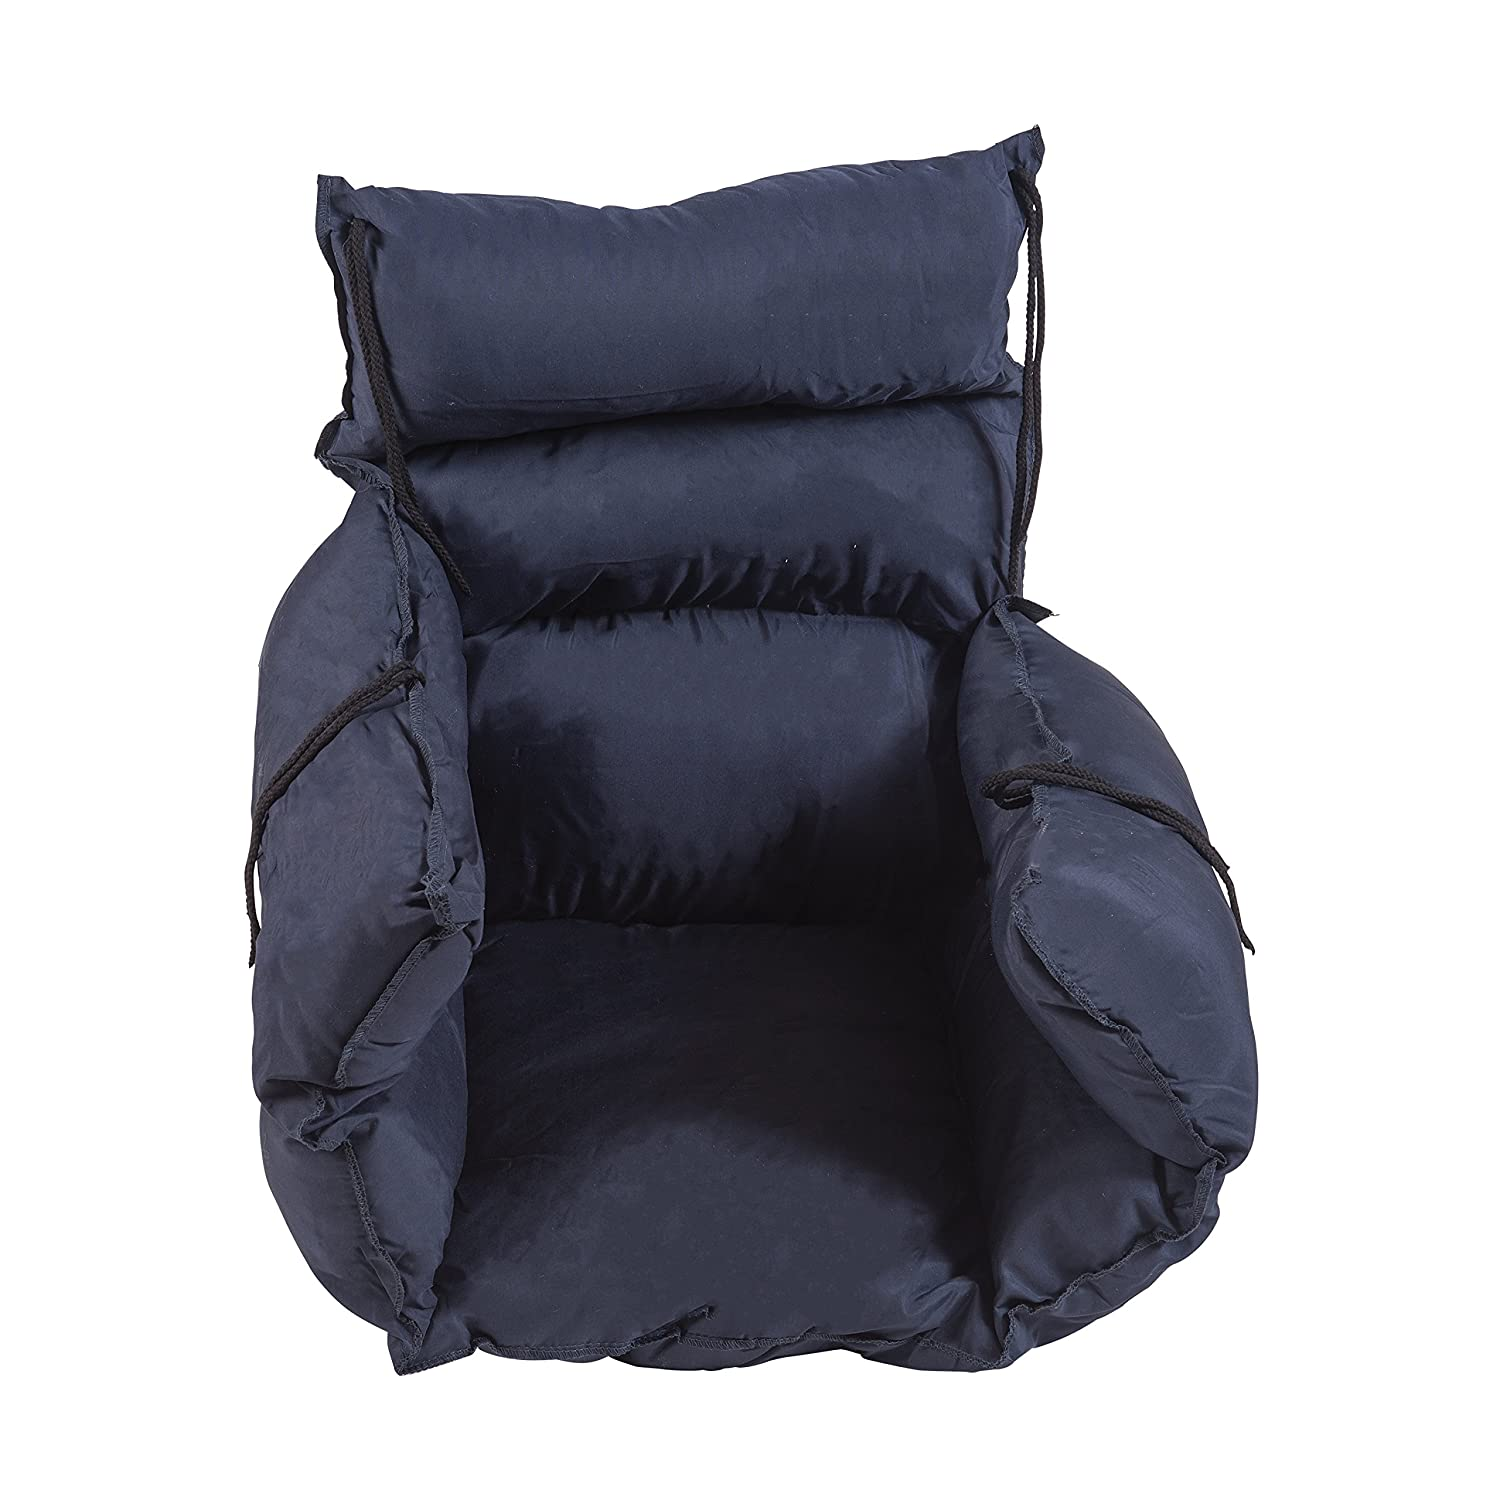 DMI Comfort Chair Cushion Pillow for Your Chair Recliner